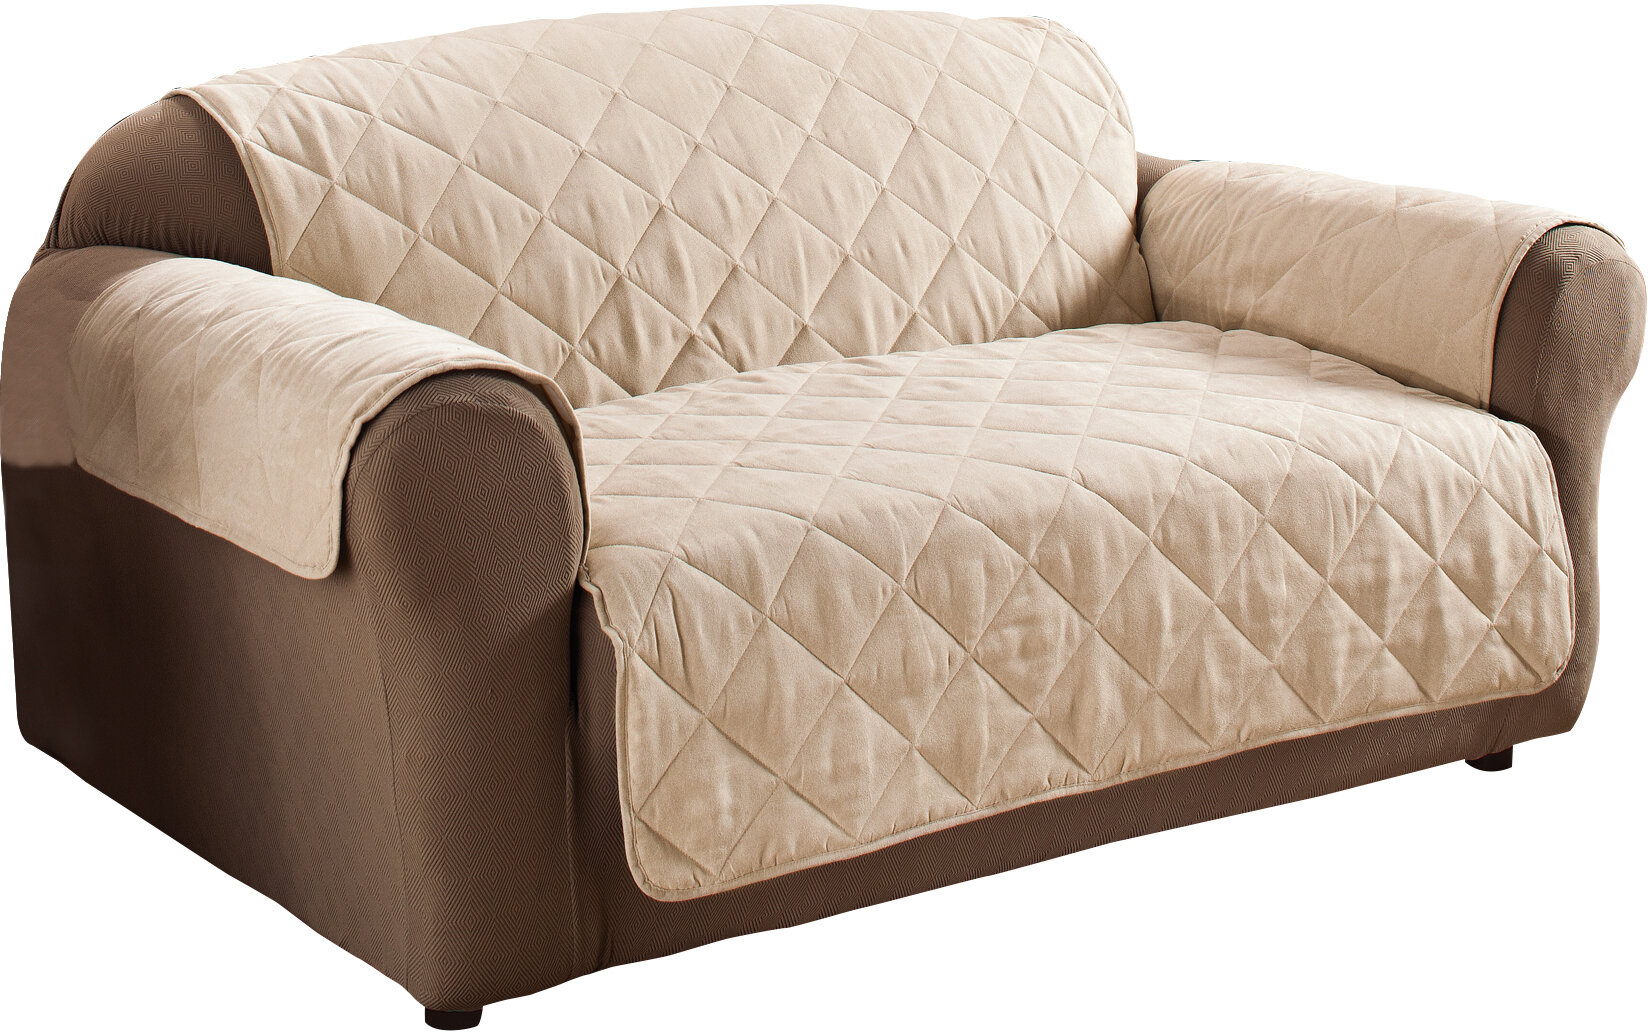 Innovative Textile Solutions Pet Loveseat Cover Ebay